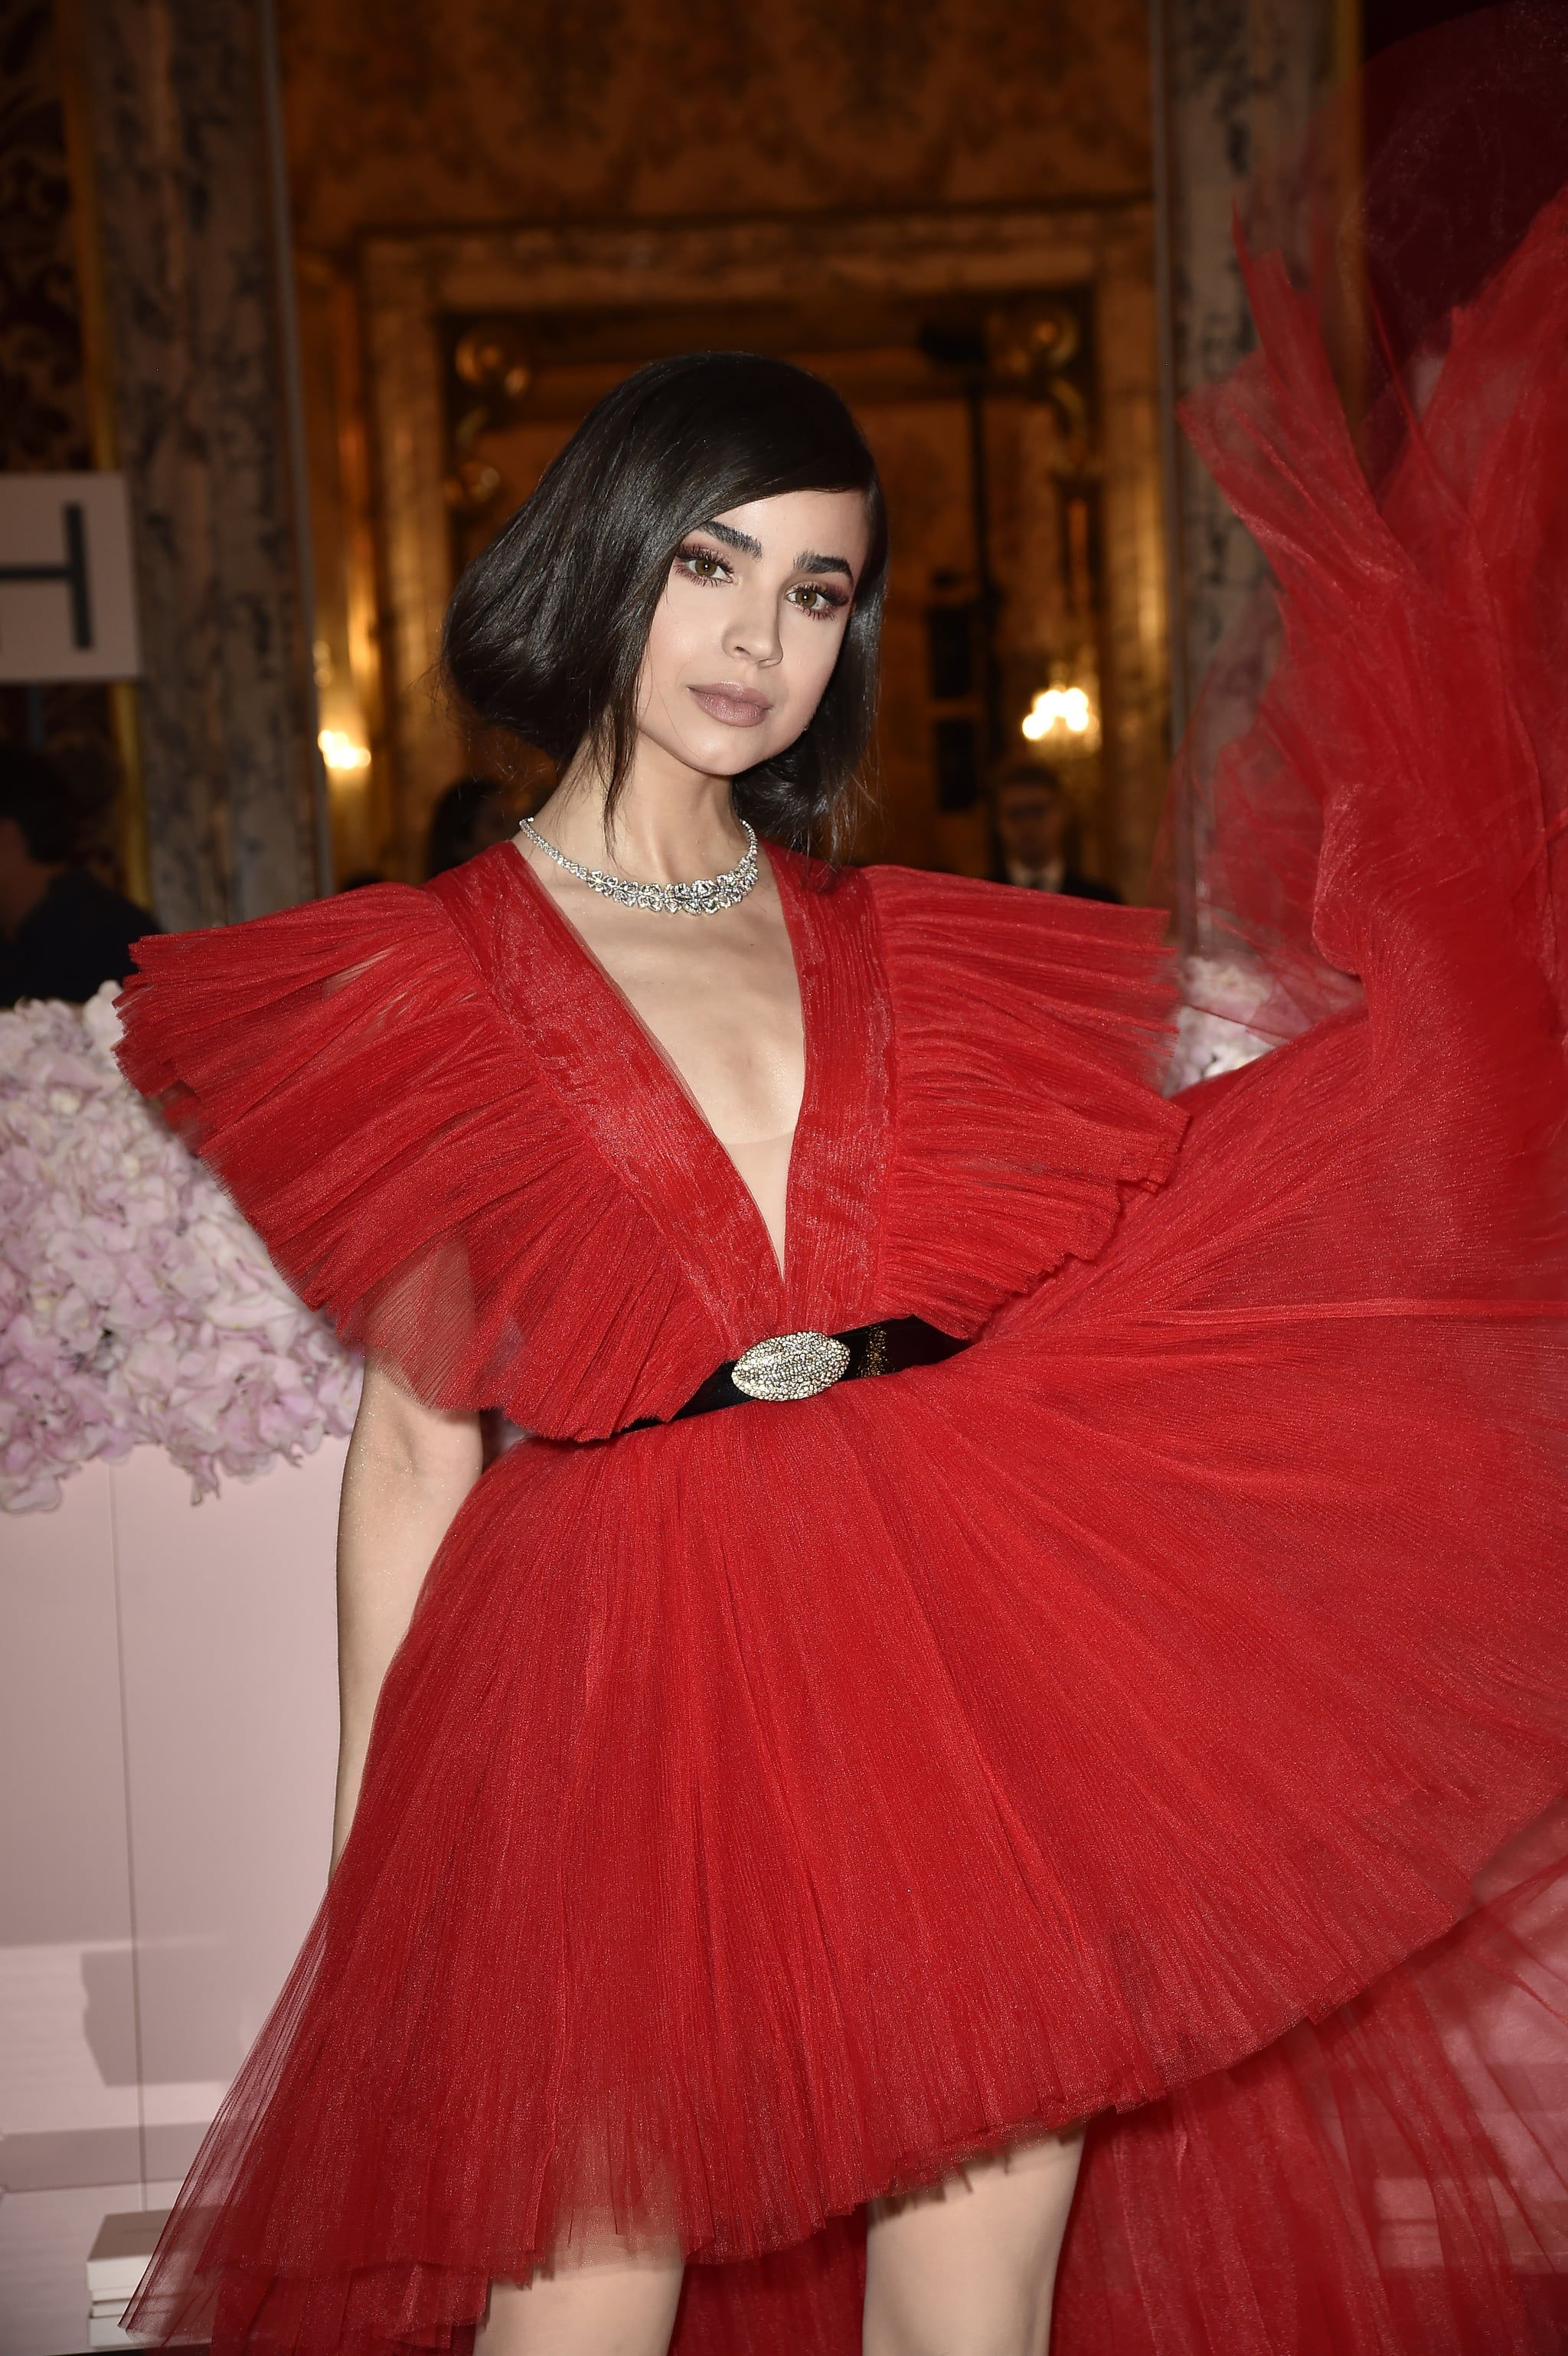 Sofia Carson Brought the Drama to the Red Carpet in This Show-Stopping Holiday Dress by H&M